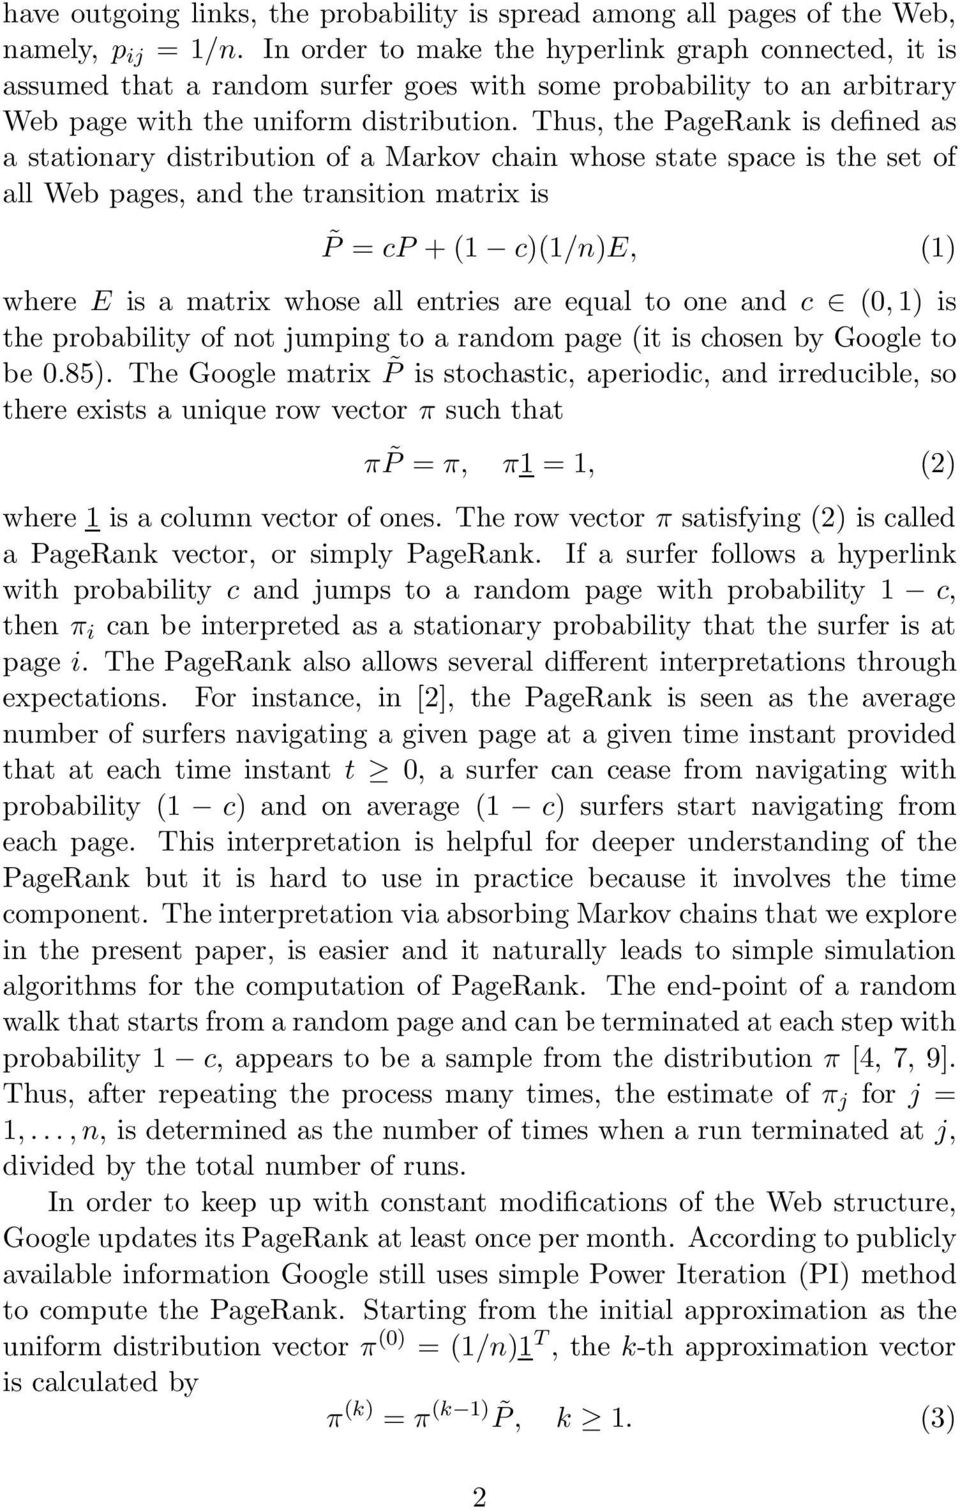 Thus, the PageRank is defined as a stationary distribution of a Markov chain whose state space is the set of all Web pages, and the transition matrix is P = cp + (1 c)(1/n)e, (1) where E is a matrix